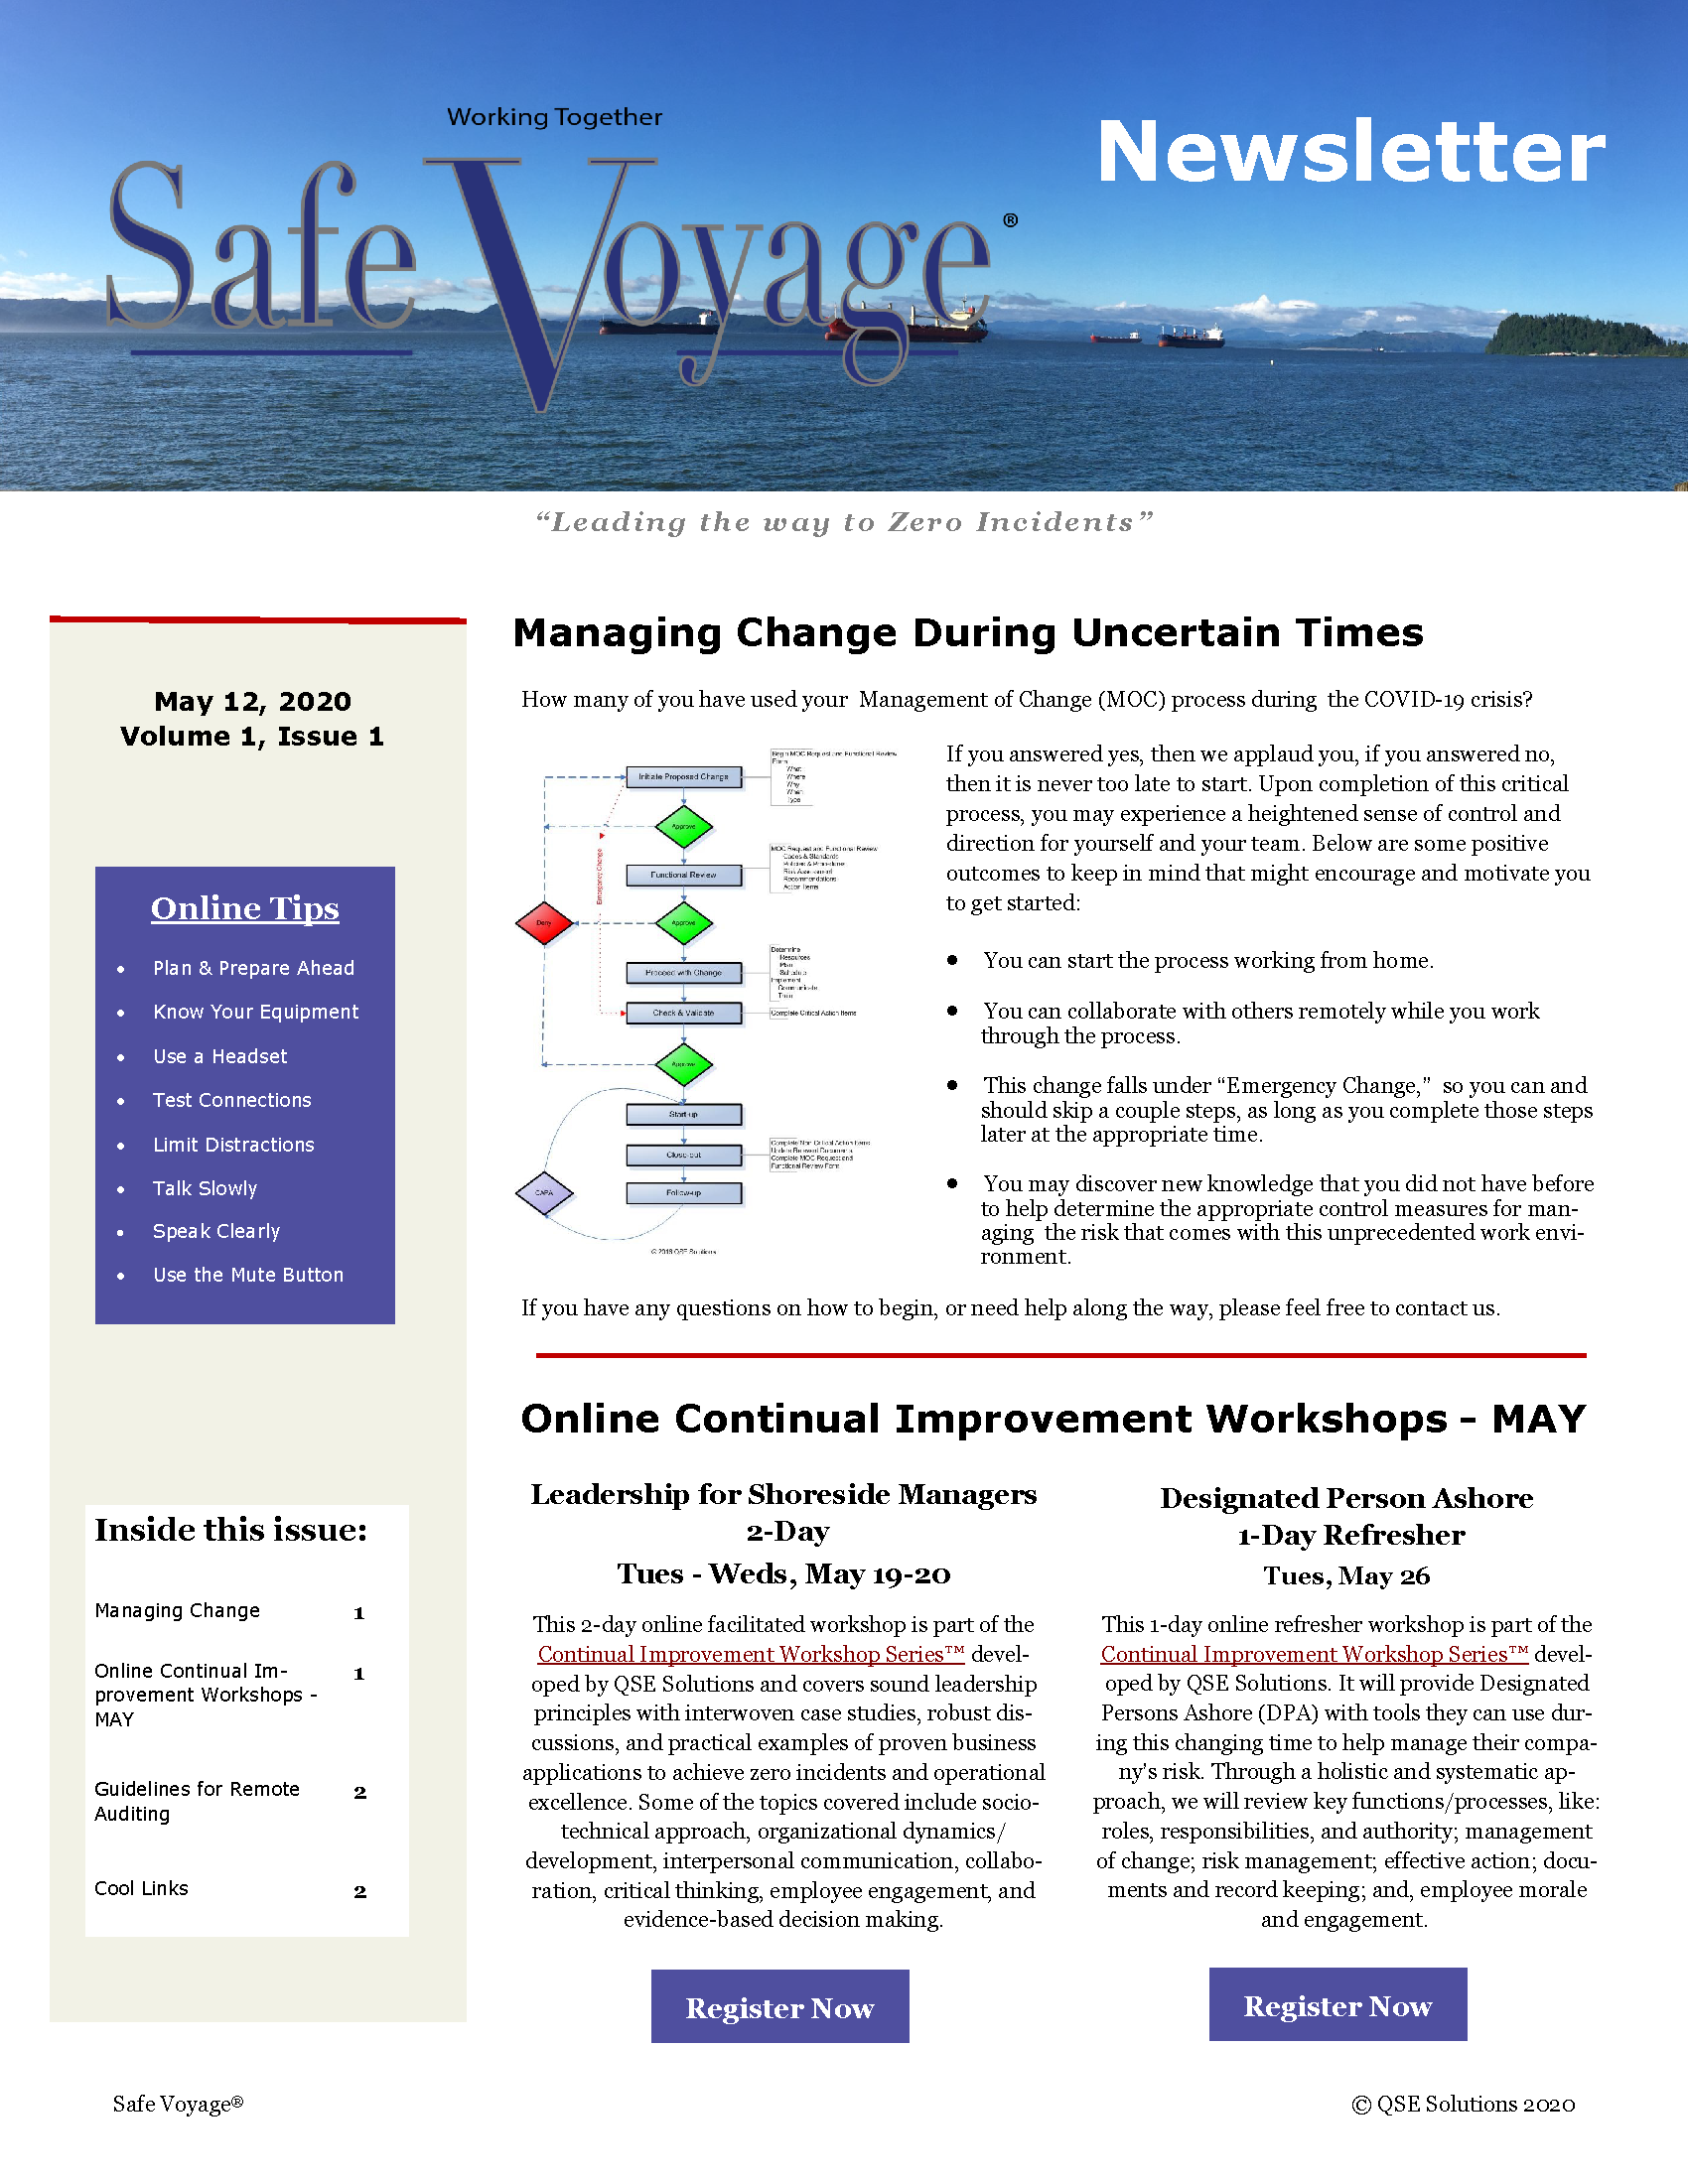 https://0201.nccdn.net/4_2/000/000/024/ec9/Safe-Voyage-Newsletter-2020-May.png